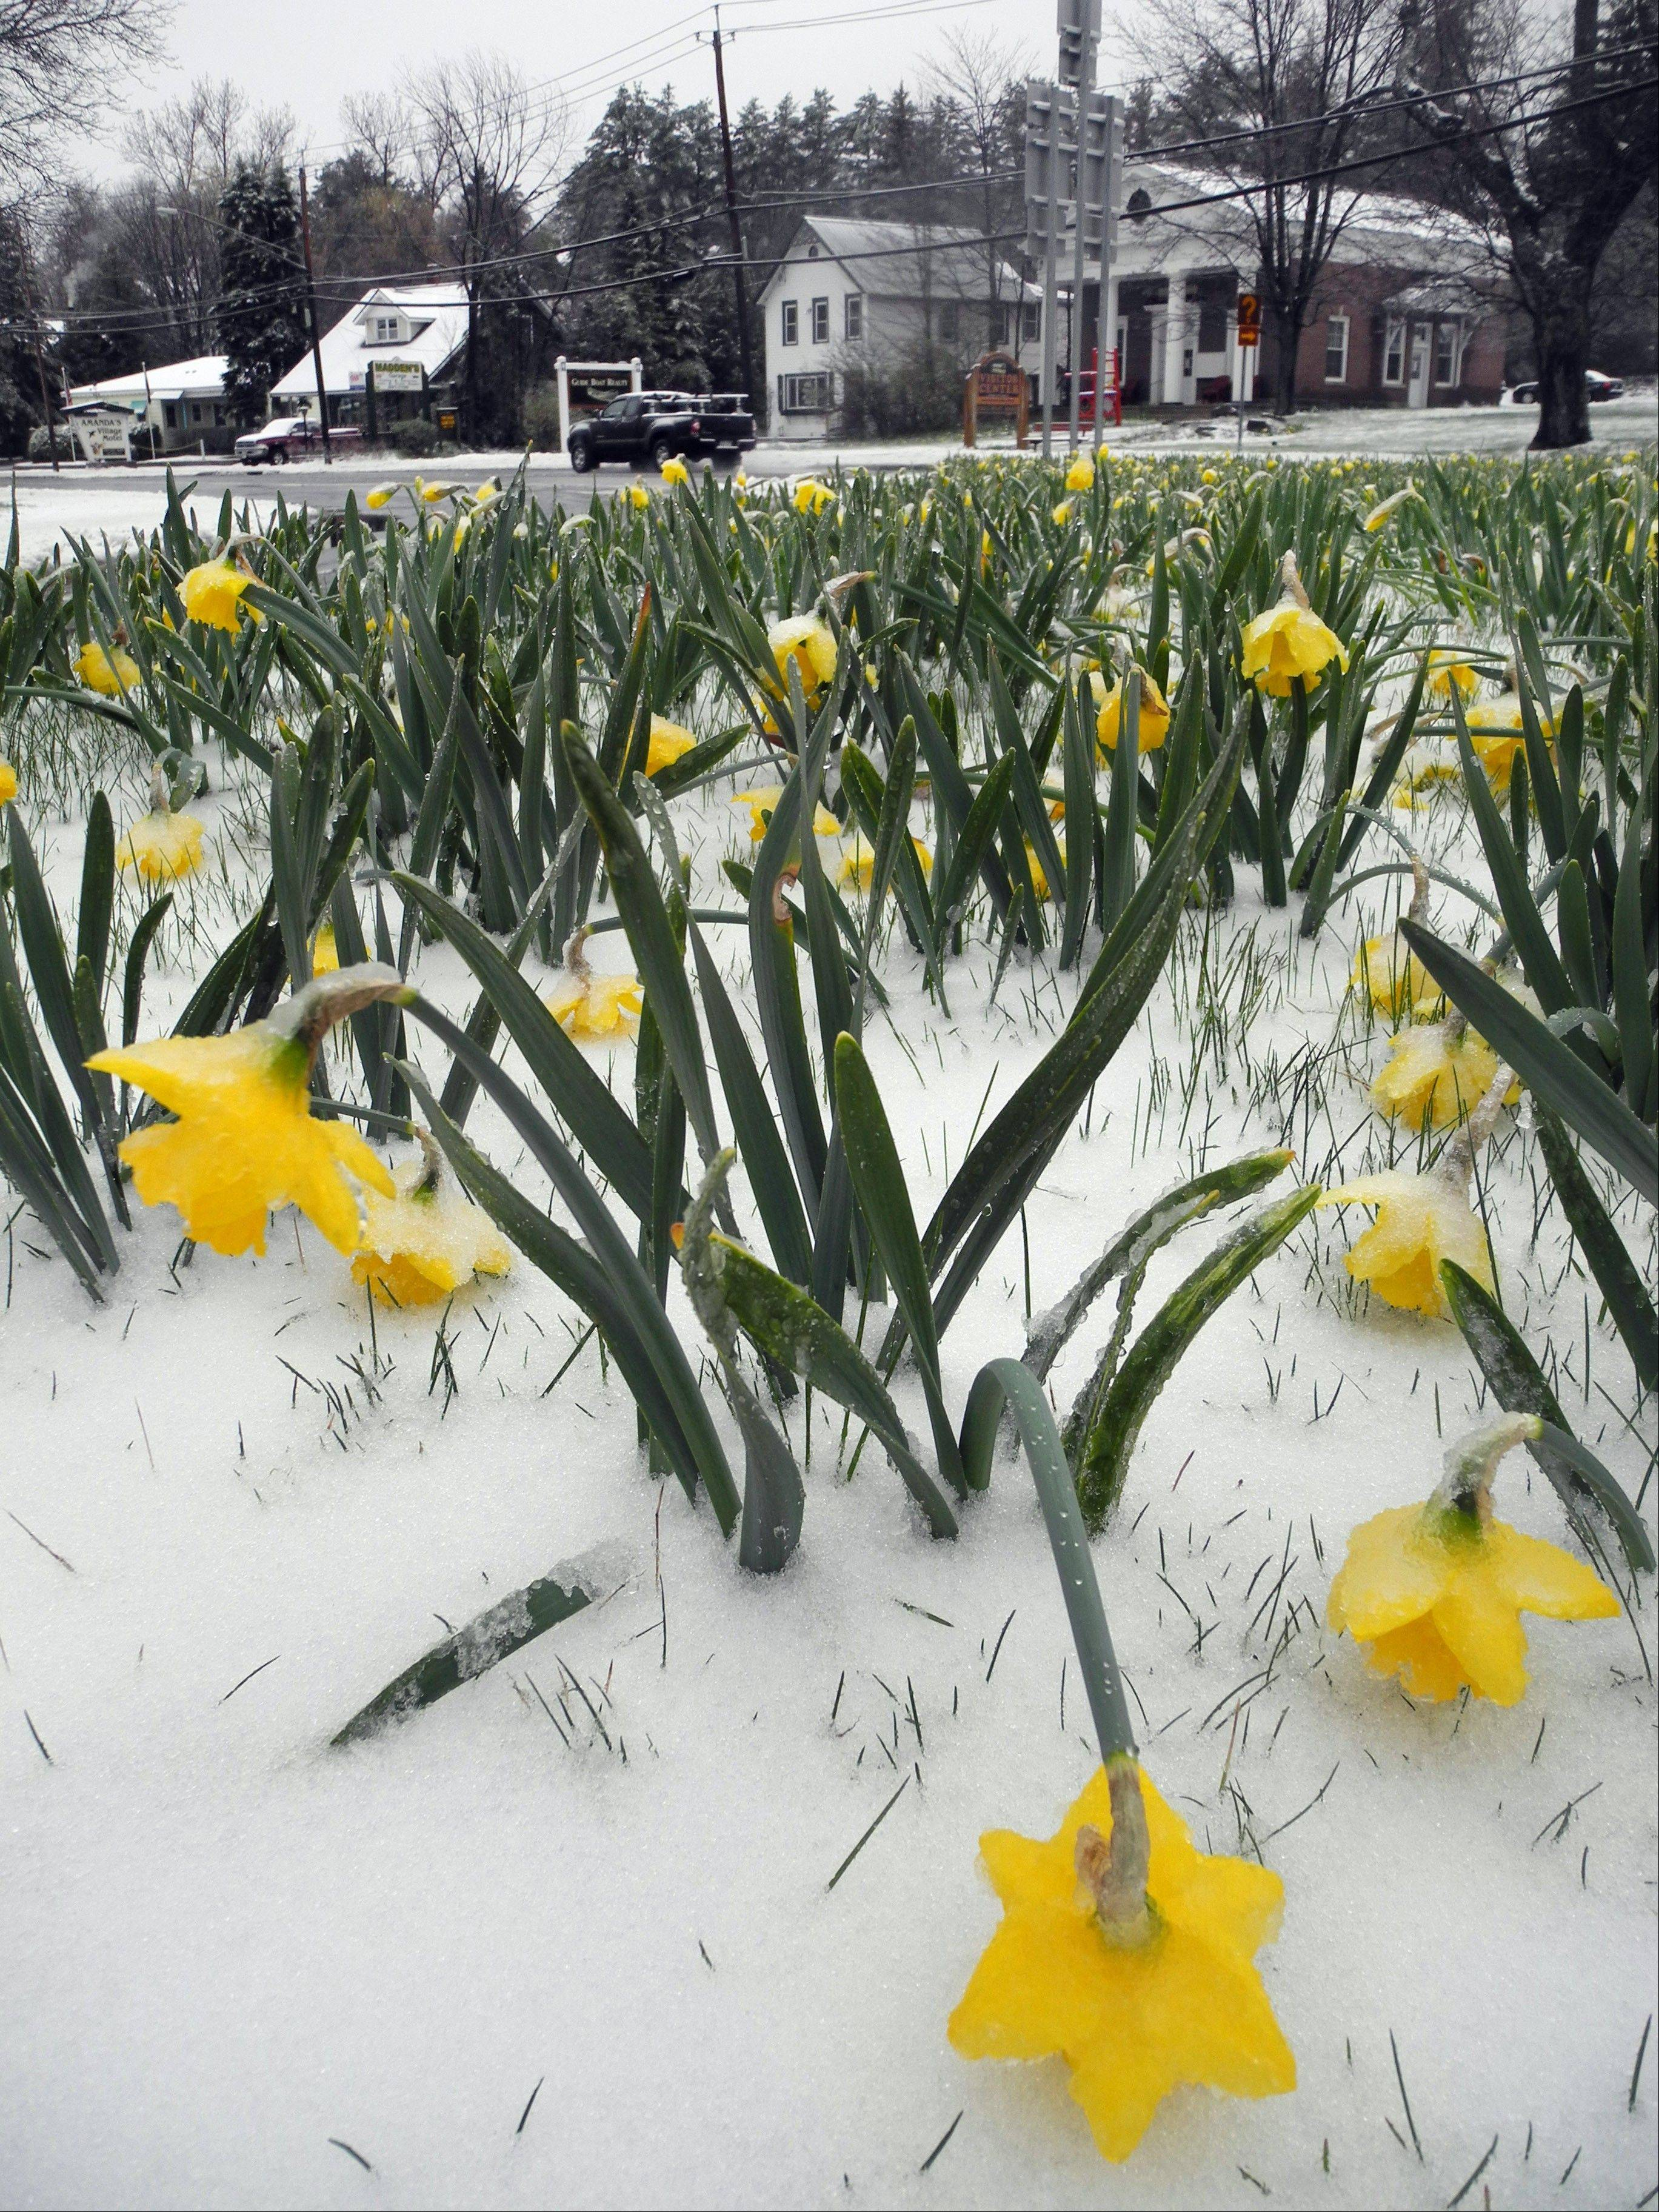 Snow blankets daffodils in Saranac Lake, N.Y., Monday morning, April 23, 2012. A spring nor'easter packing soaking rain and high winds churned up the Northeast Monday morning, unleashing a burst of winter and up to a foot of snow in higher elevations inland, closing some schools and sparking concerns of power outages. A Daffest is scheduled for this coming weekend in Saranac Lake where daffodils blooming all over the village were beaten down by slushy snow.